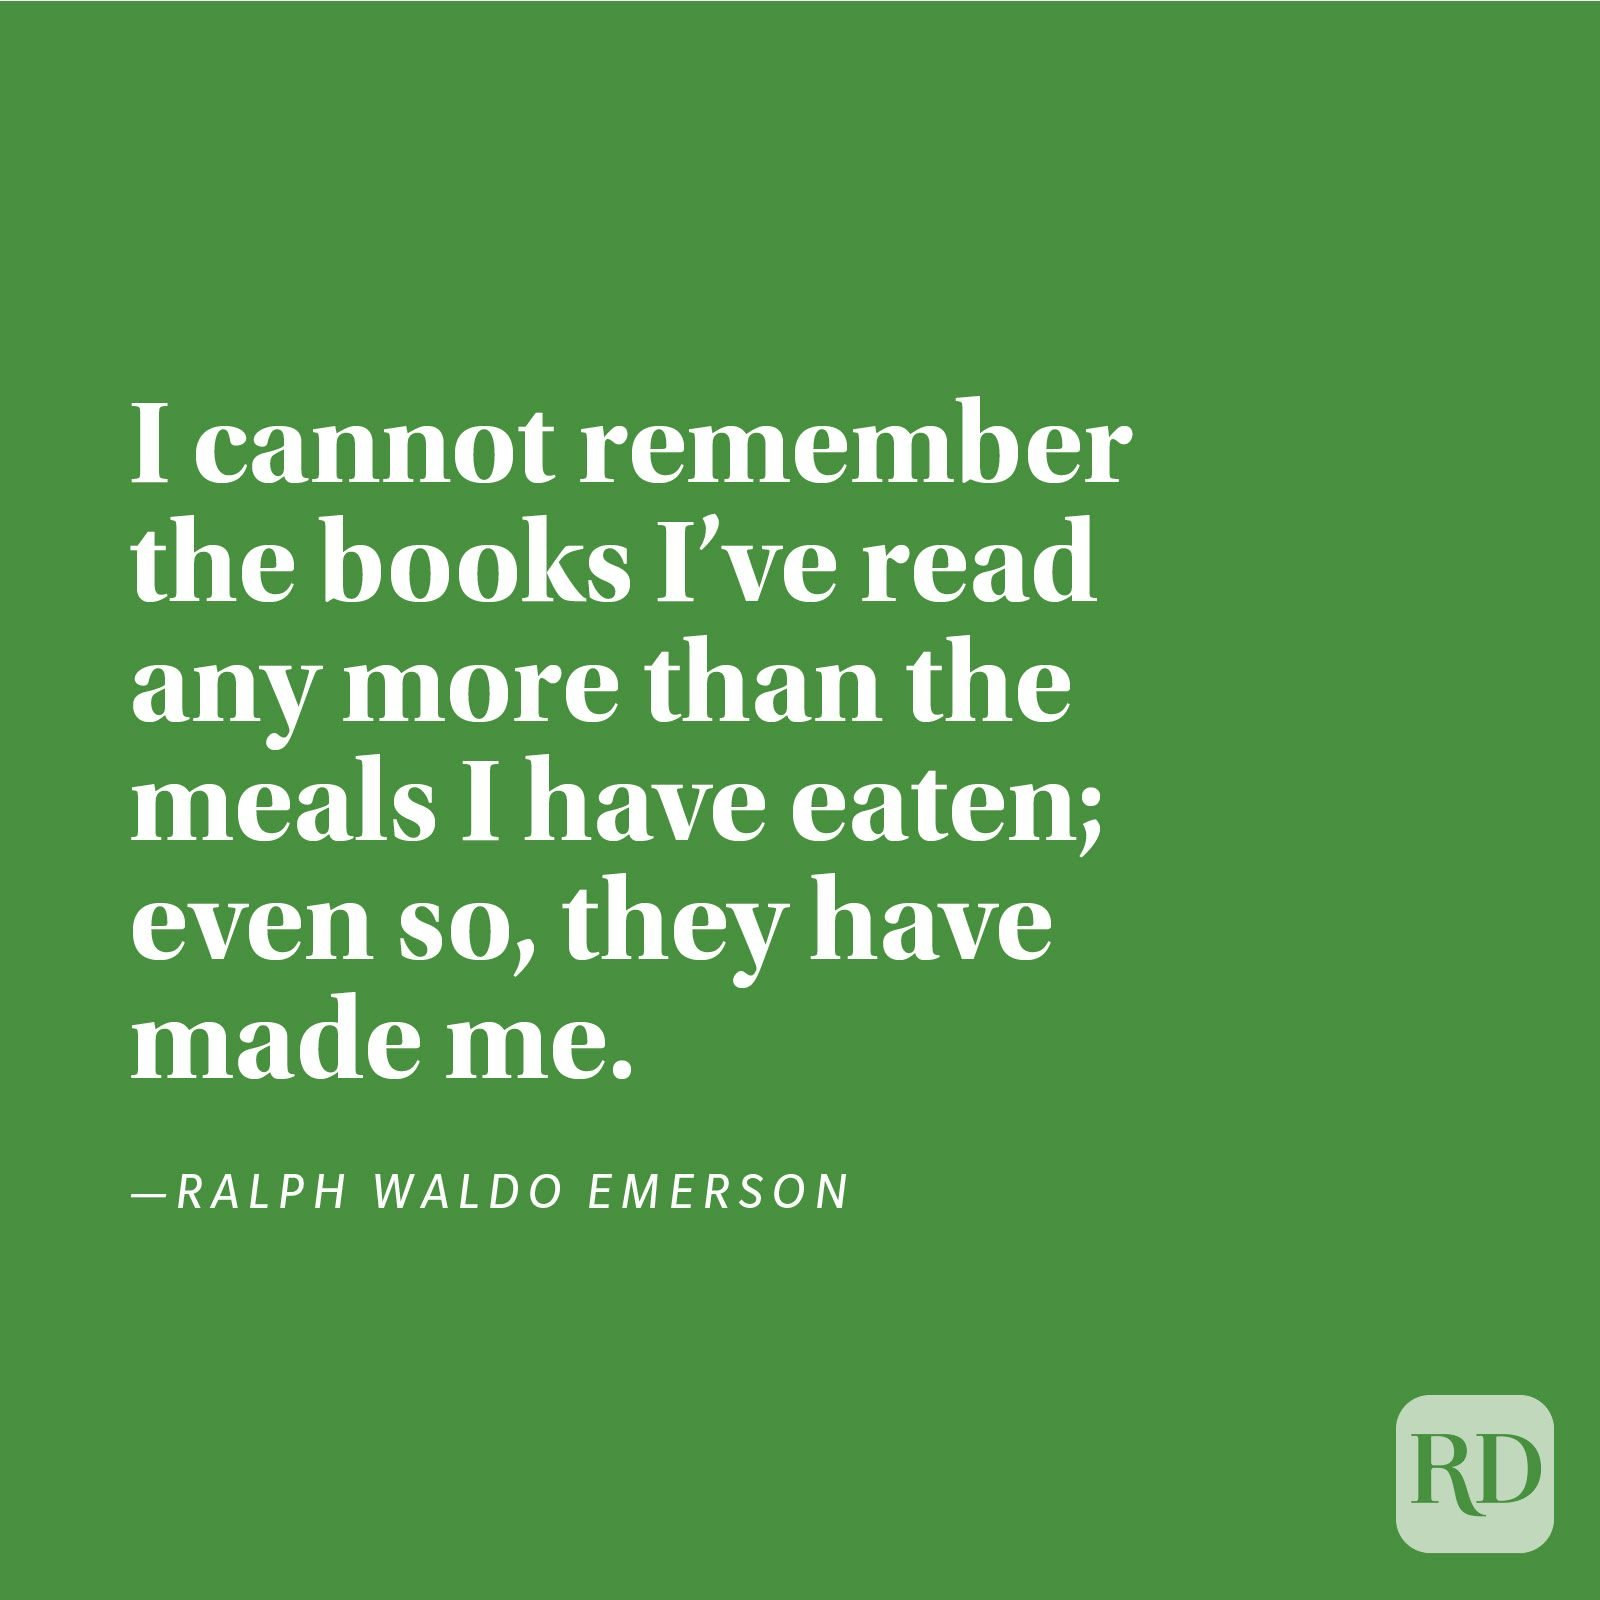 """I cannot remember the books I've read any more than the meals I have eaten; even so, they have made me."" —Ralph Waldo Emerson"